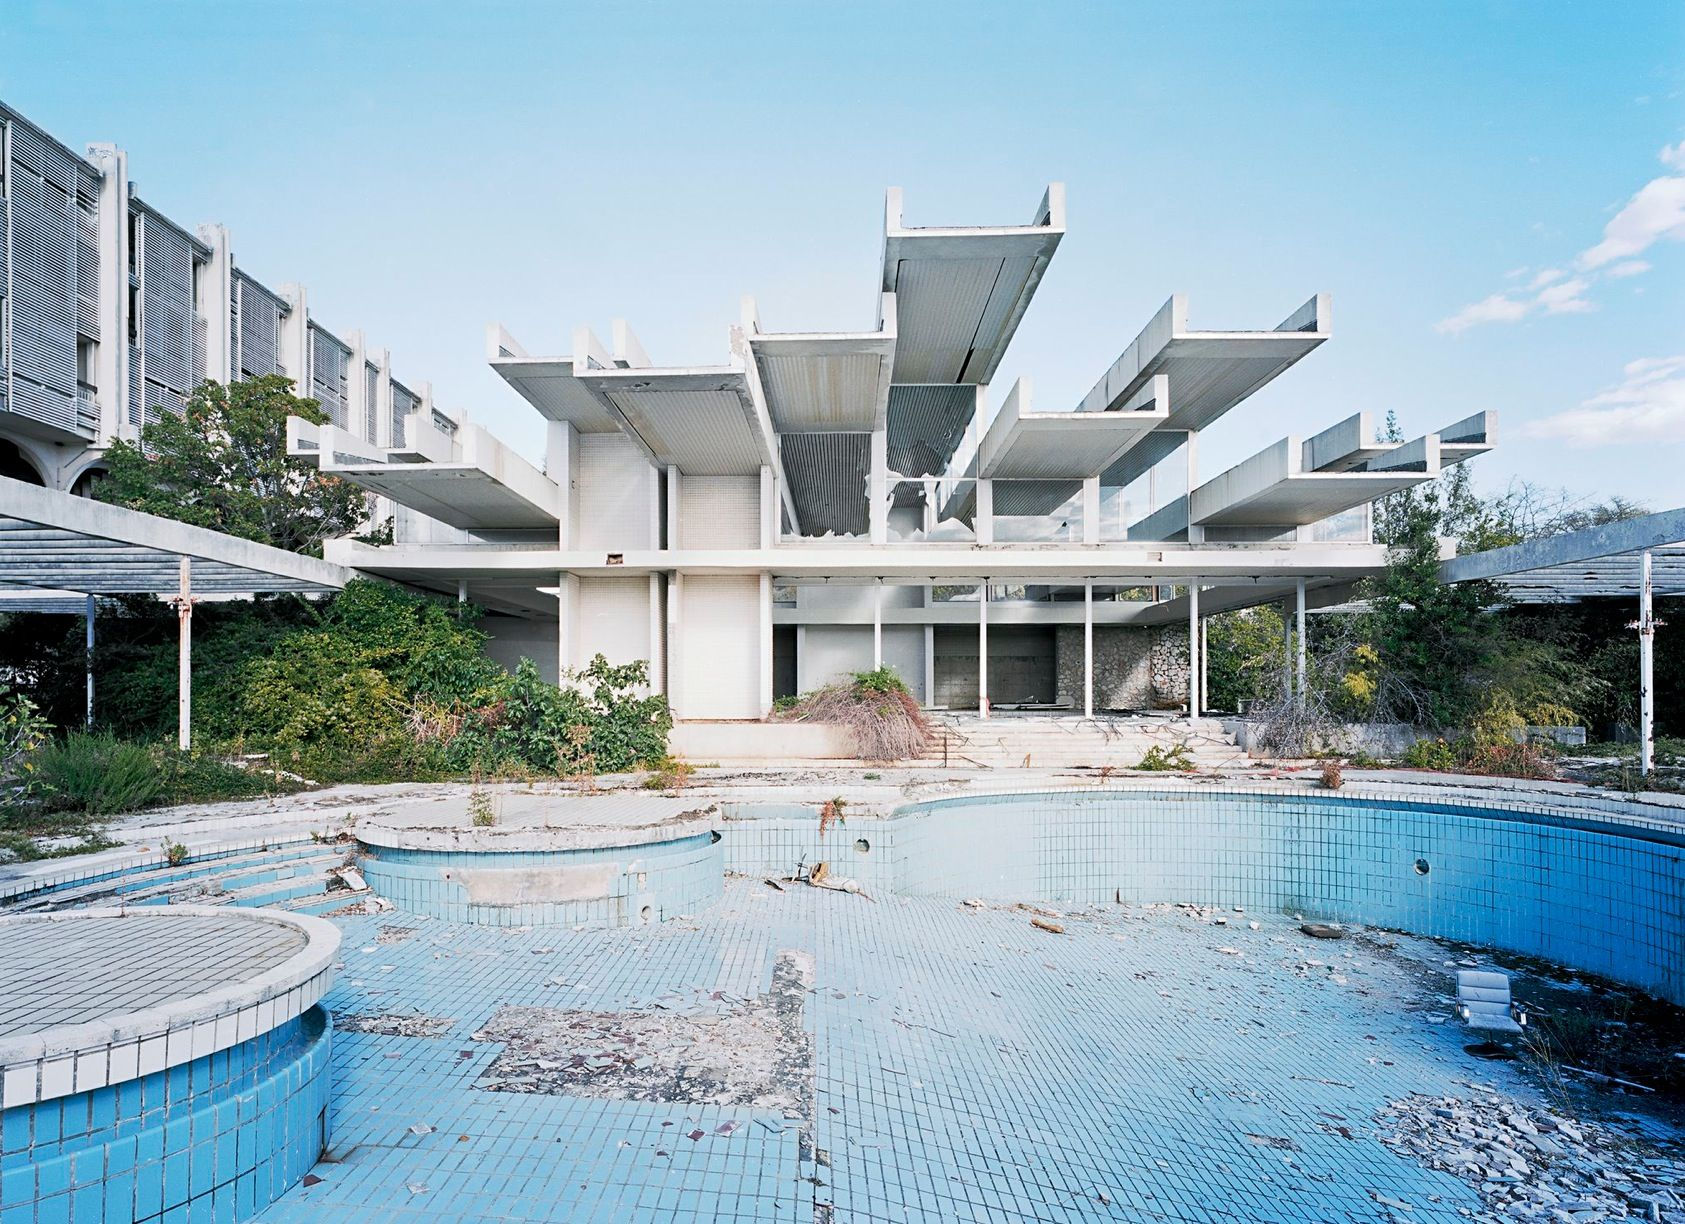 Hotel Maru Palace The Haludovo Palace Hotel Is An Abandoned Resort Hotel On The